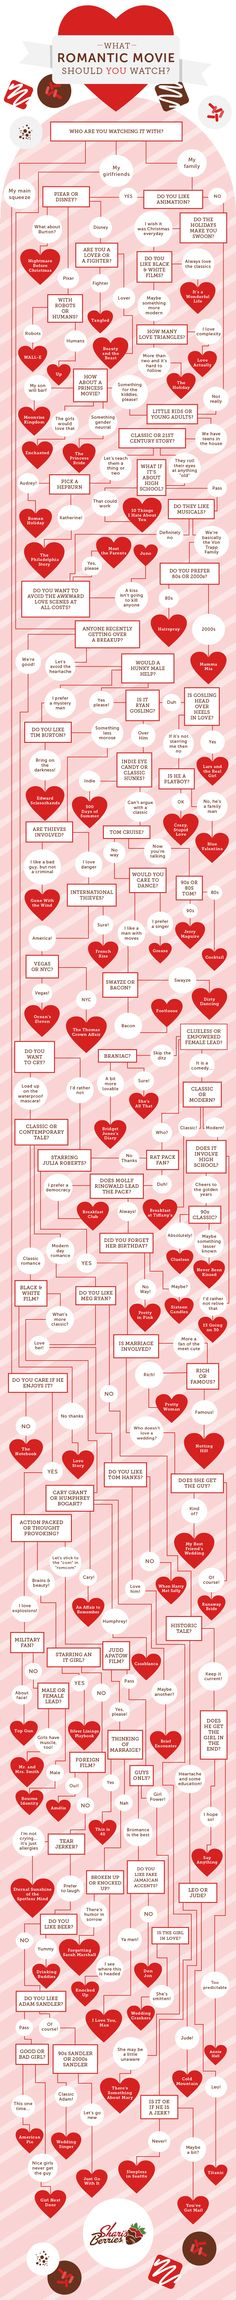 what romantic movie should you watch